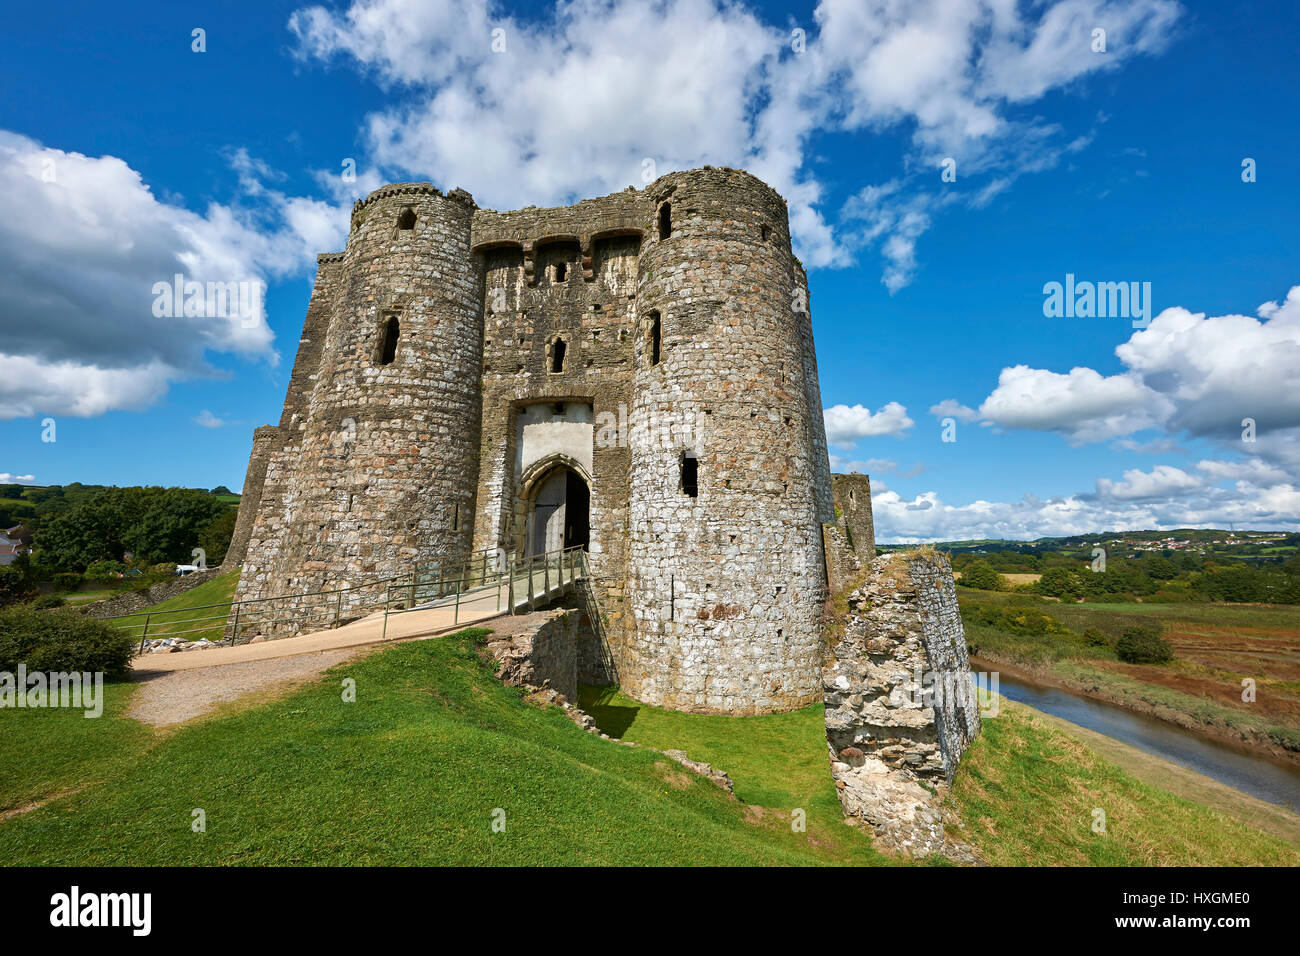 Gate towers of the Medieval Norman Kidwelly Castle, Kidwelly, Carmarthenshire, Wales. - Stock Image